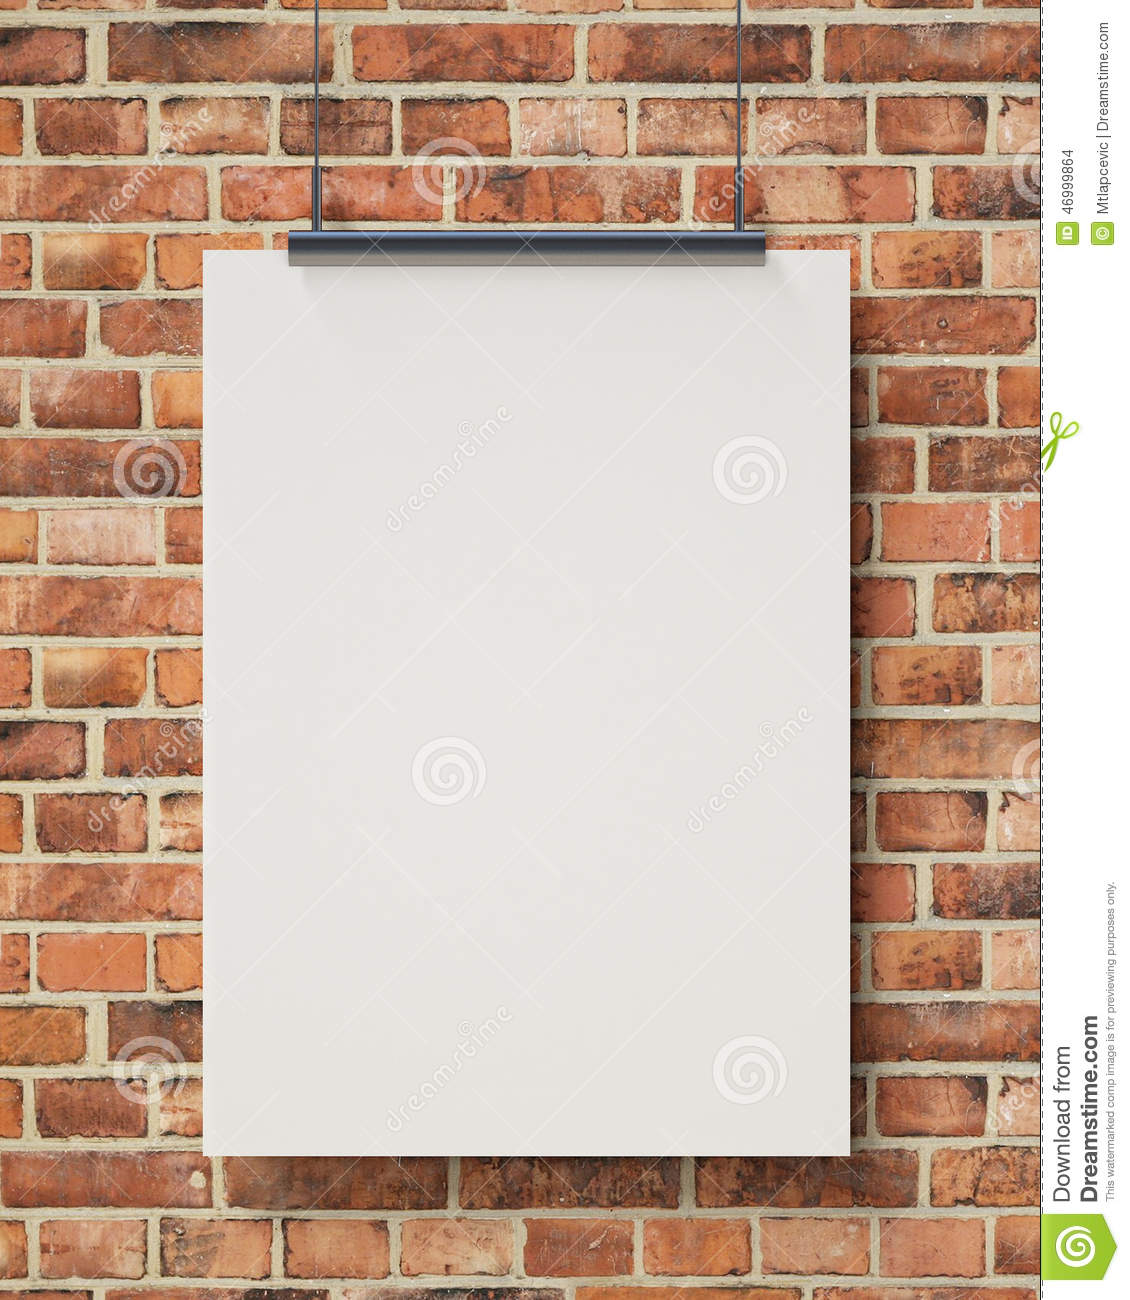 wall templates for hanging pictures - mock up blank white hanging poster on brick wall